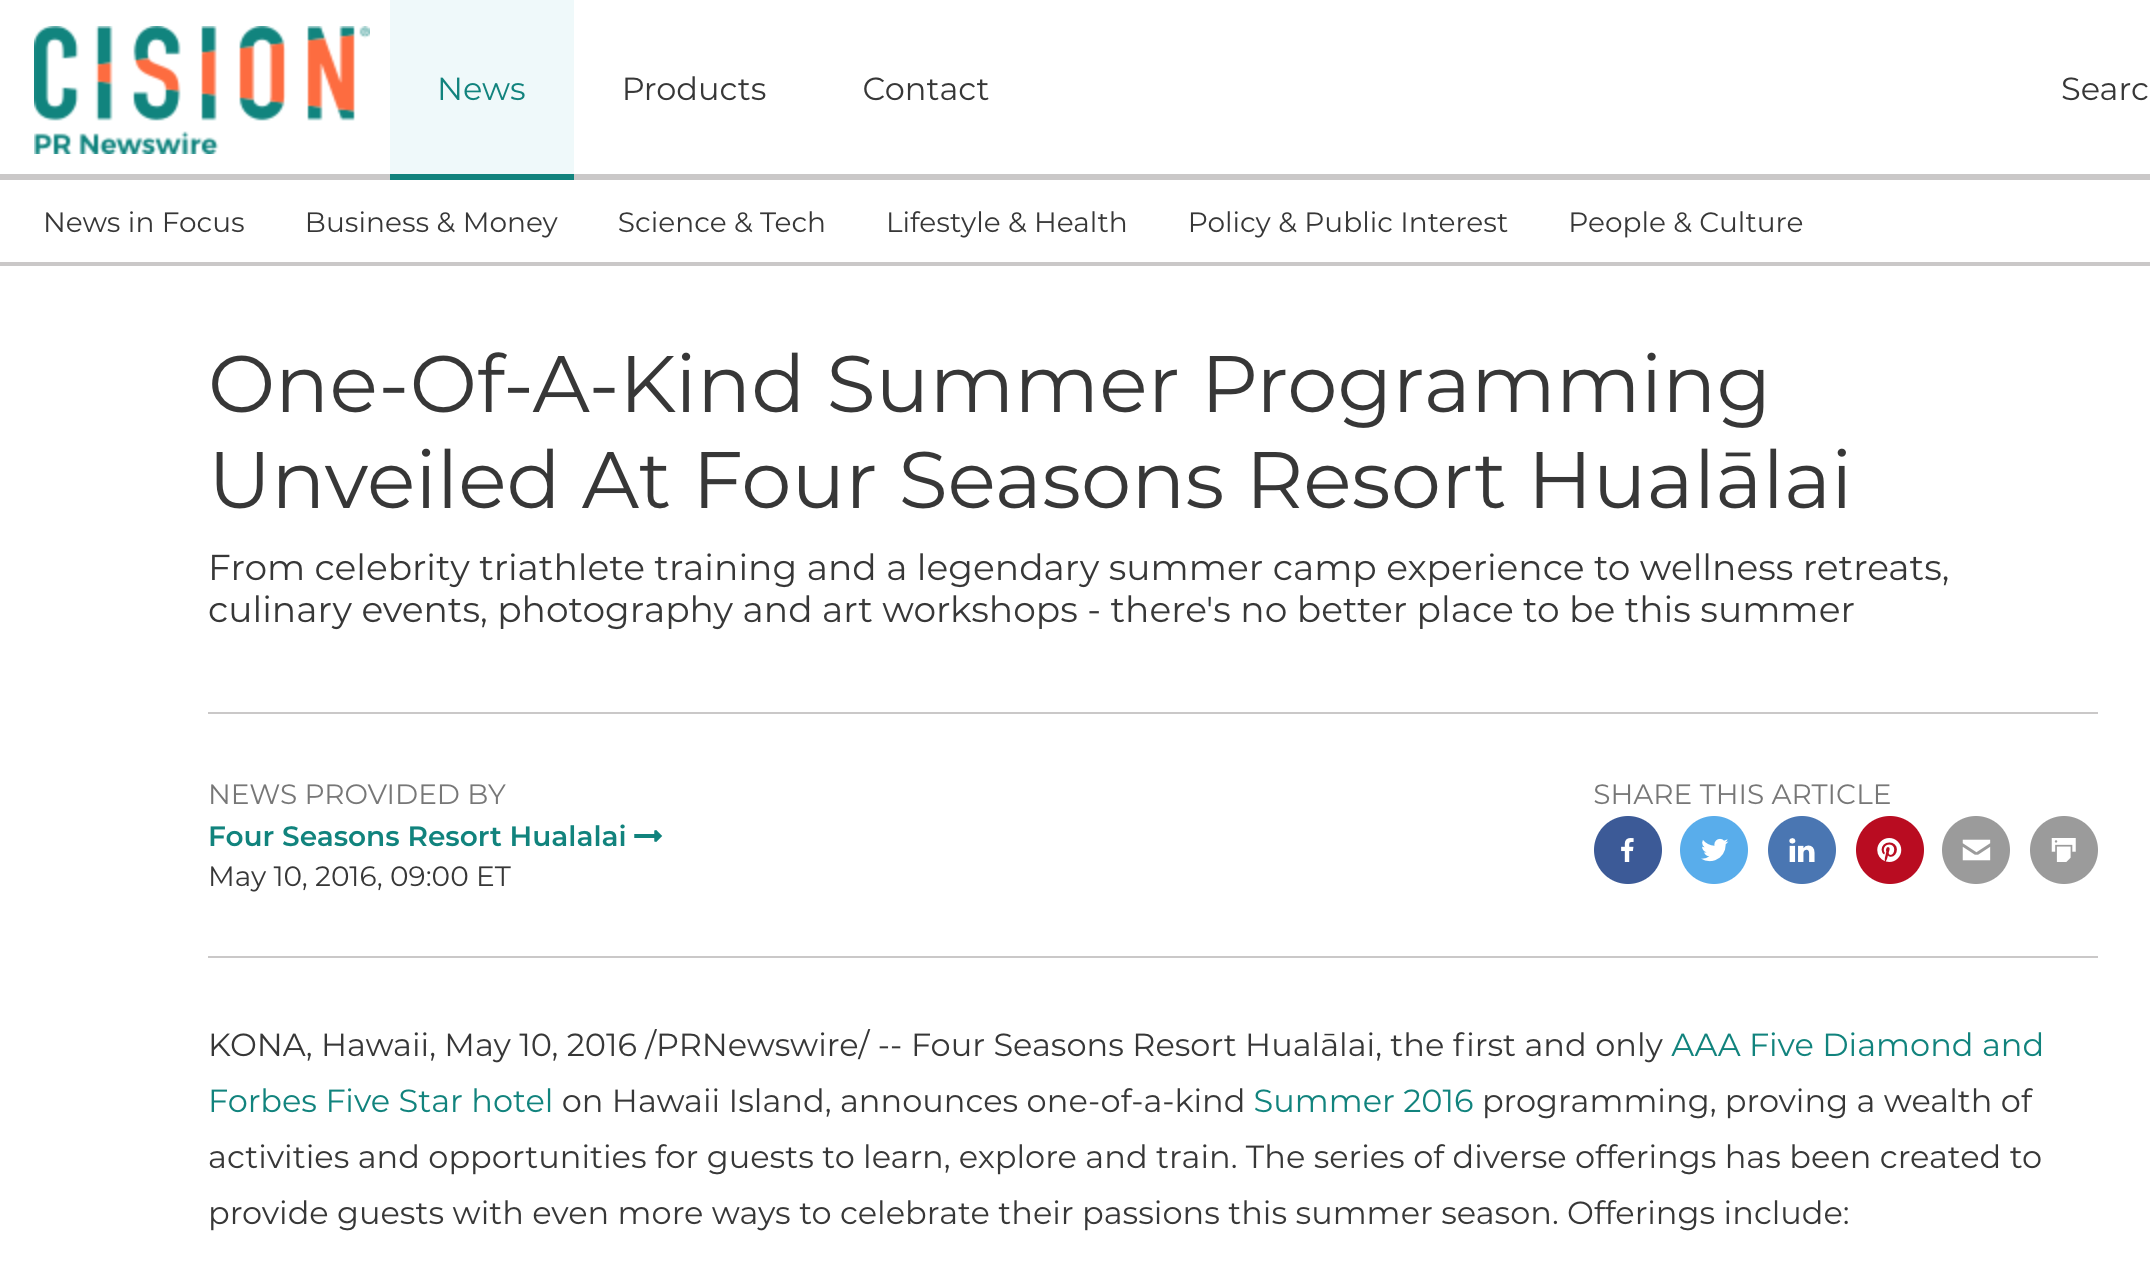 KONA, Hawaii, May 10, 2016 /PRNewswire/ --       Four Seasons Resort Hualālai, the first and only    AAA Five Diamond and Forbes Five Star hotel    on Hawaii Island, announces one-of-a-kind    Summer 2016    programming, proving a wealth of activities and opportunities for guests to learn, explore and train.